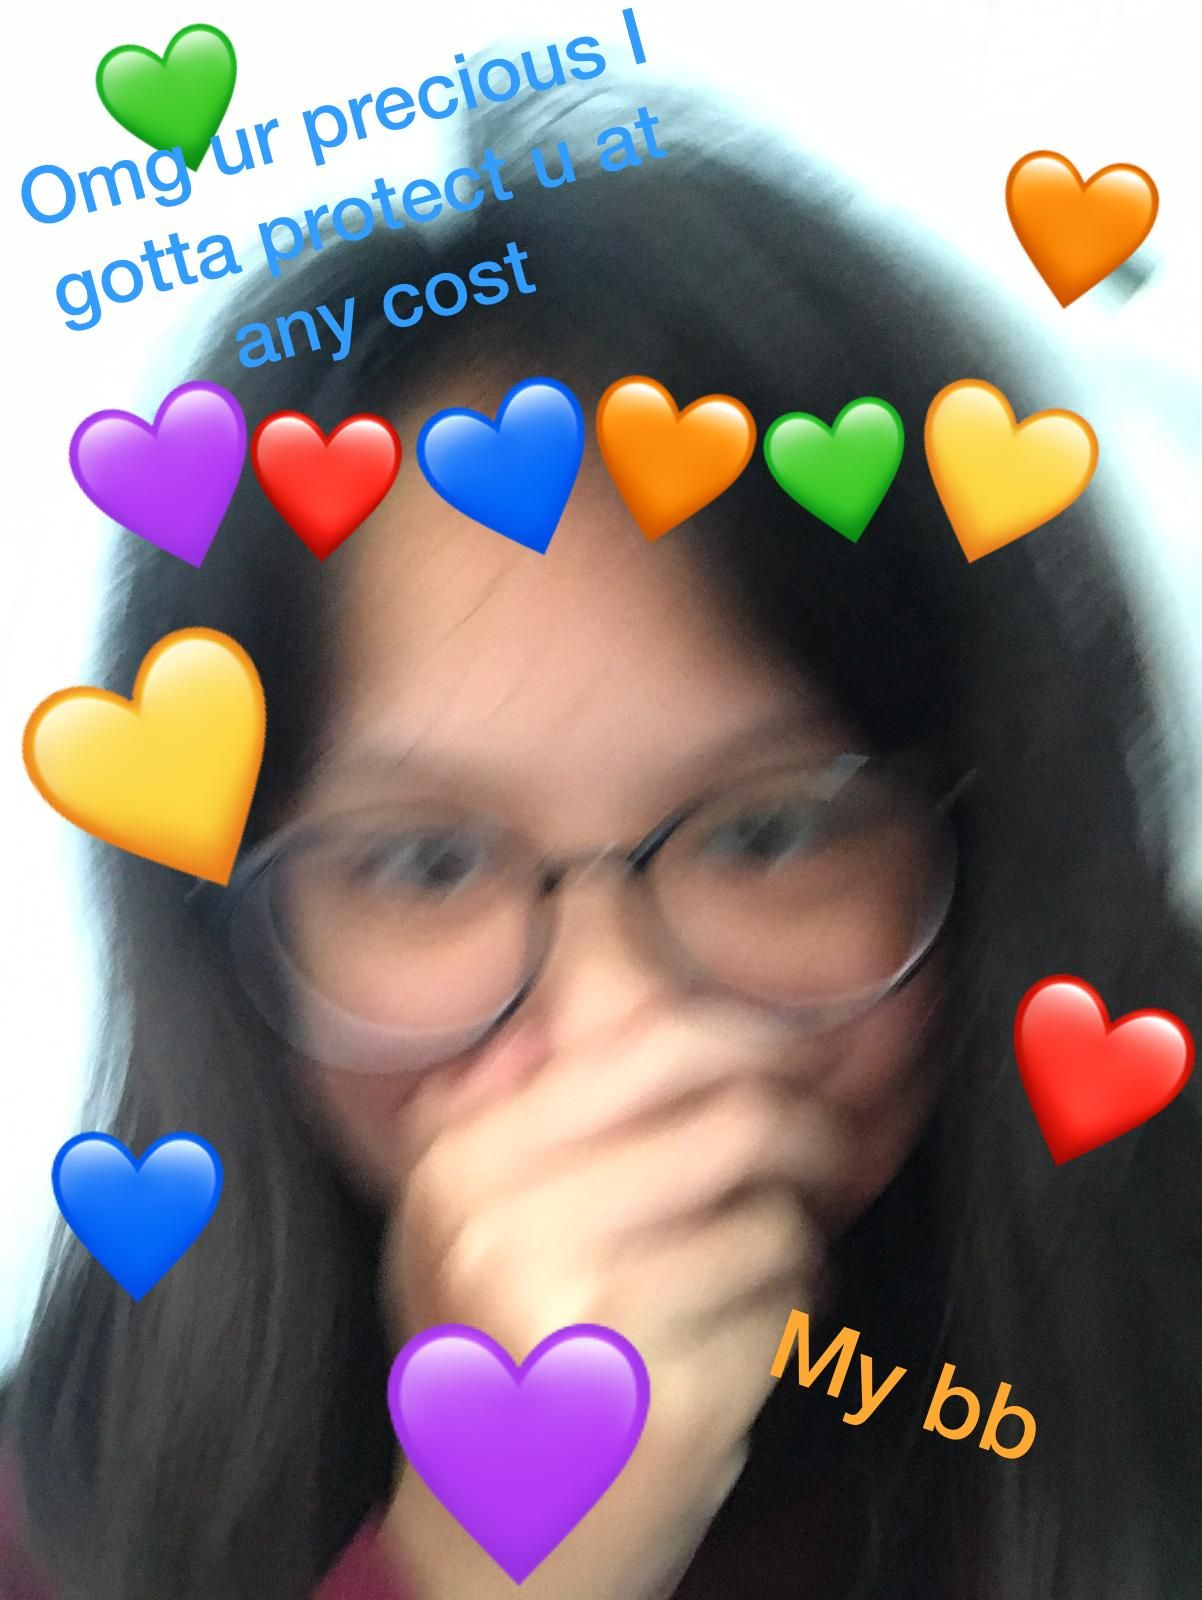 My love and affection meme Made by me, and yes that's me